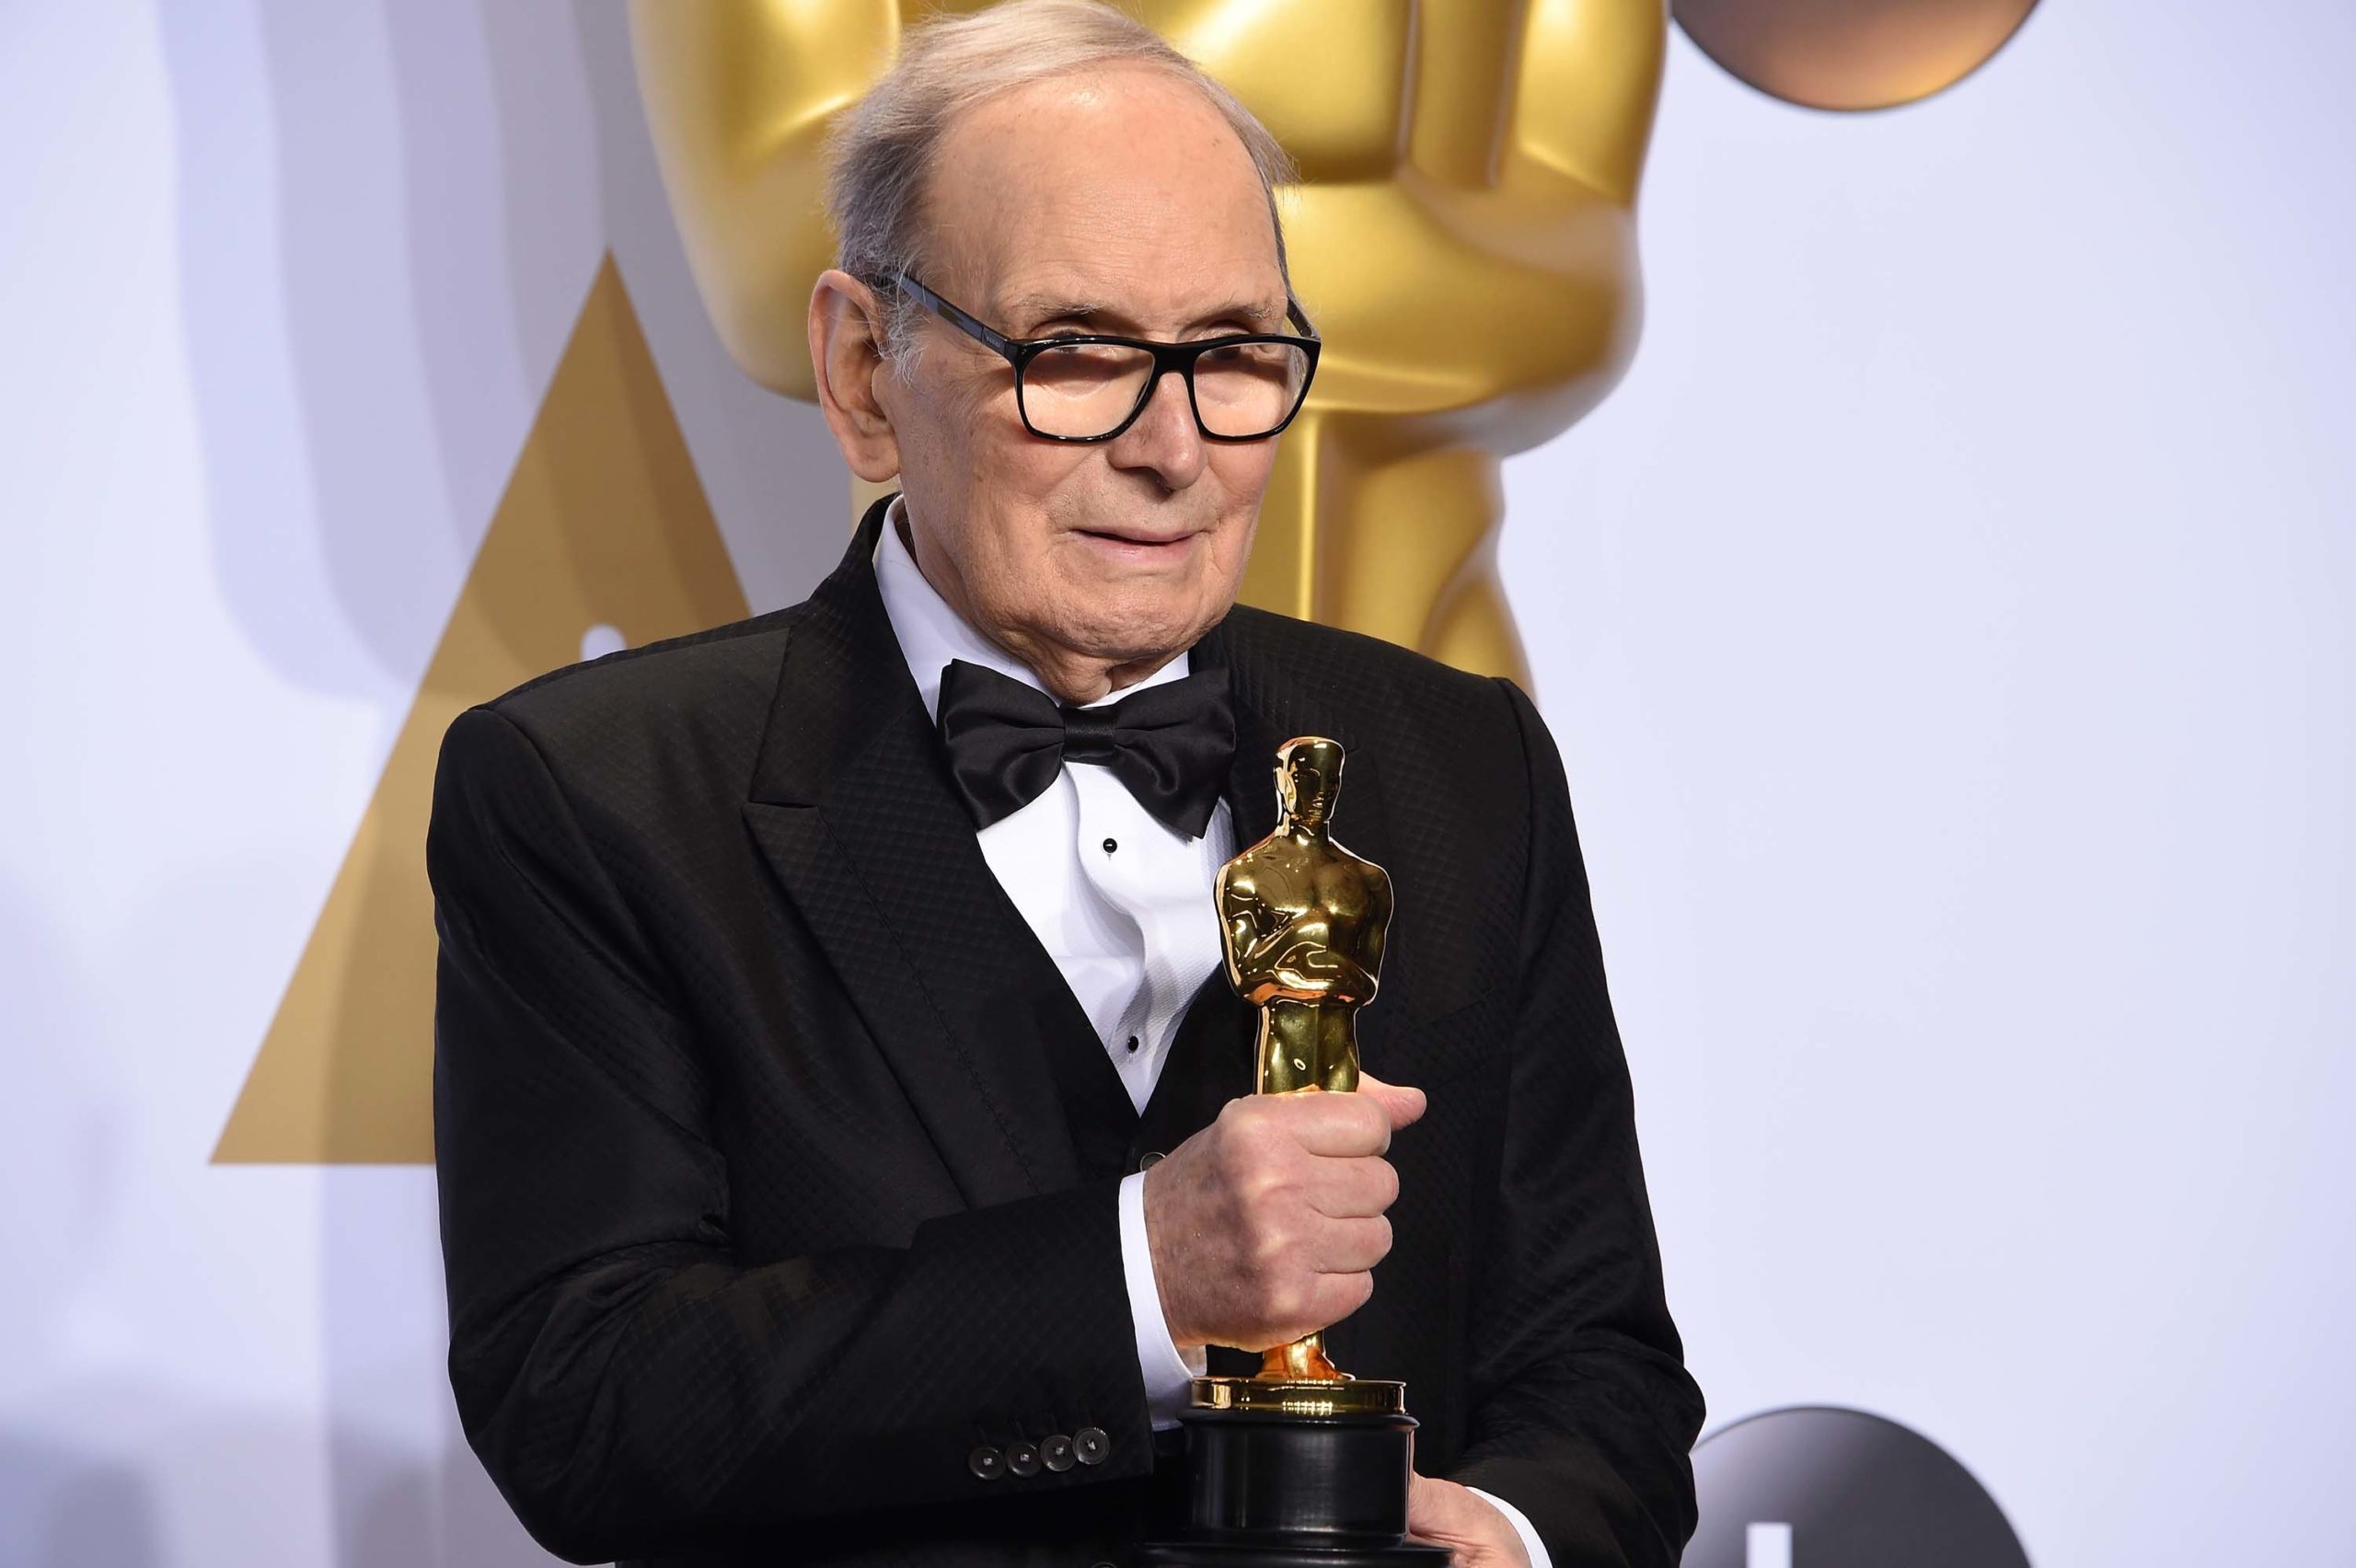 """Composer Ennio Morricone poses with the Oscar for Best Original Score, """"The Hateful Eight,"""" in the press room during the 88th Oscars in Hollywood on February 28, 2016. (Photo by Robyn BECK / AFP) (Photo by ROBYN BECK/AFP via Getty Images)"""